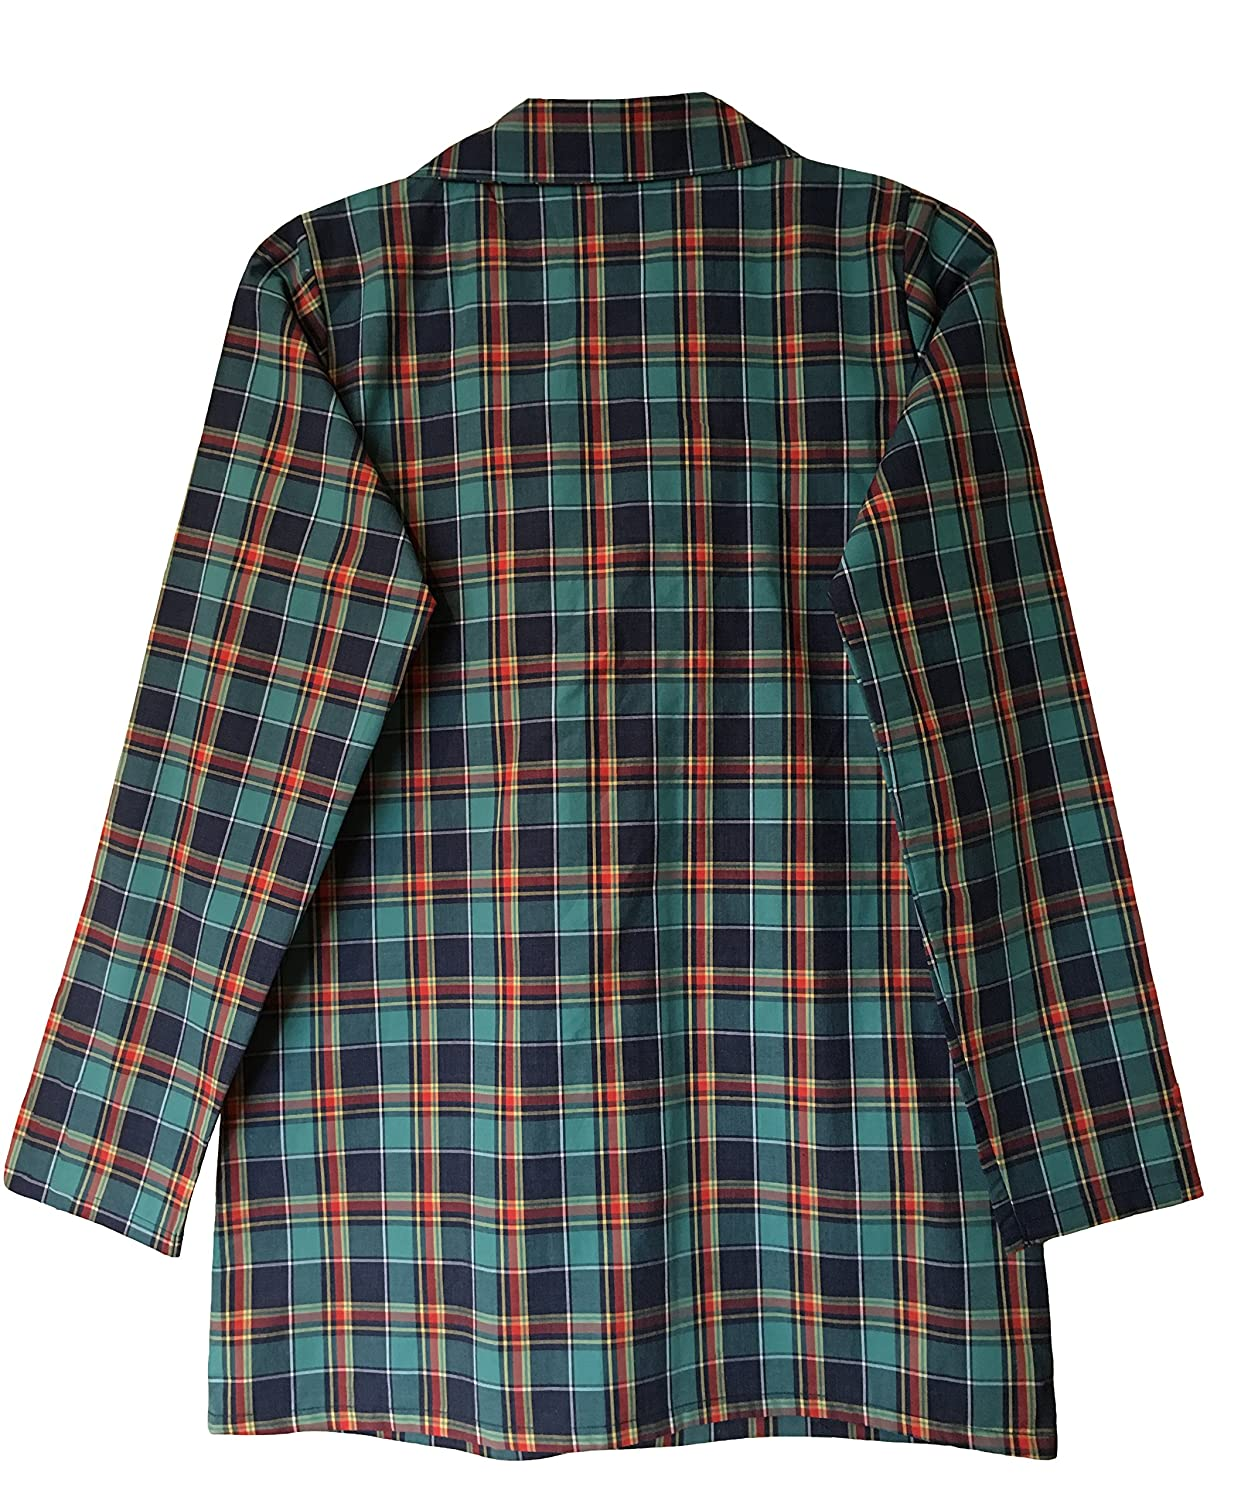 Mens 100% Cotton Button Up Long Sleeve Plaid Check Sleepwear Nightshirt at  Amazon Men s Clothing store  f1cdd14ba